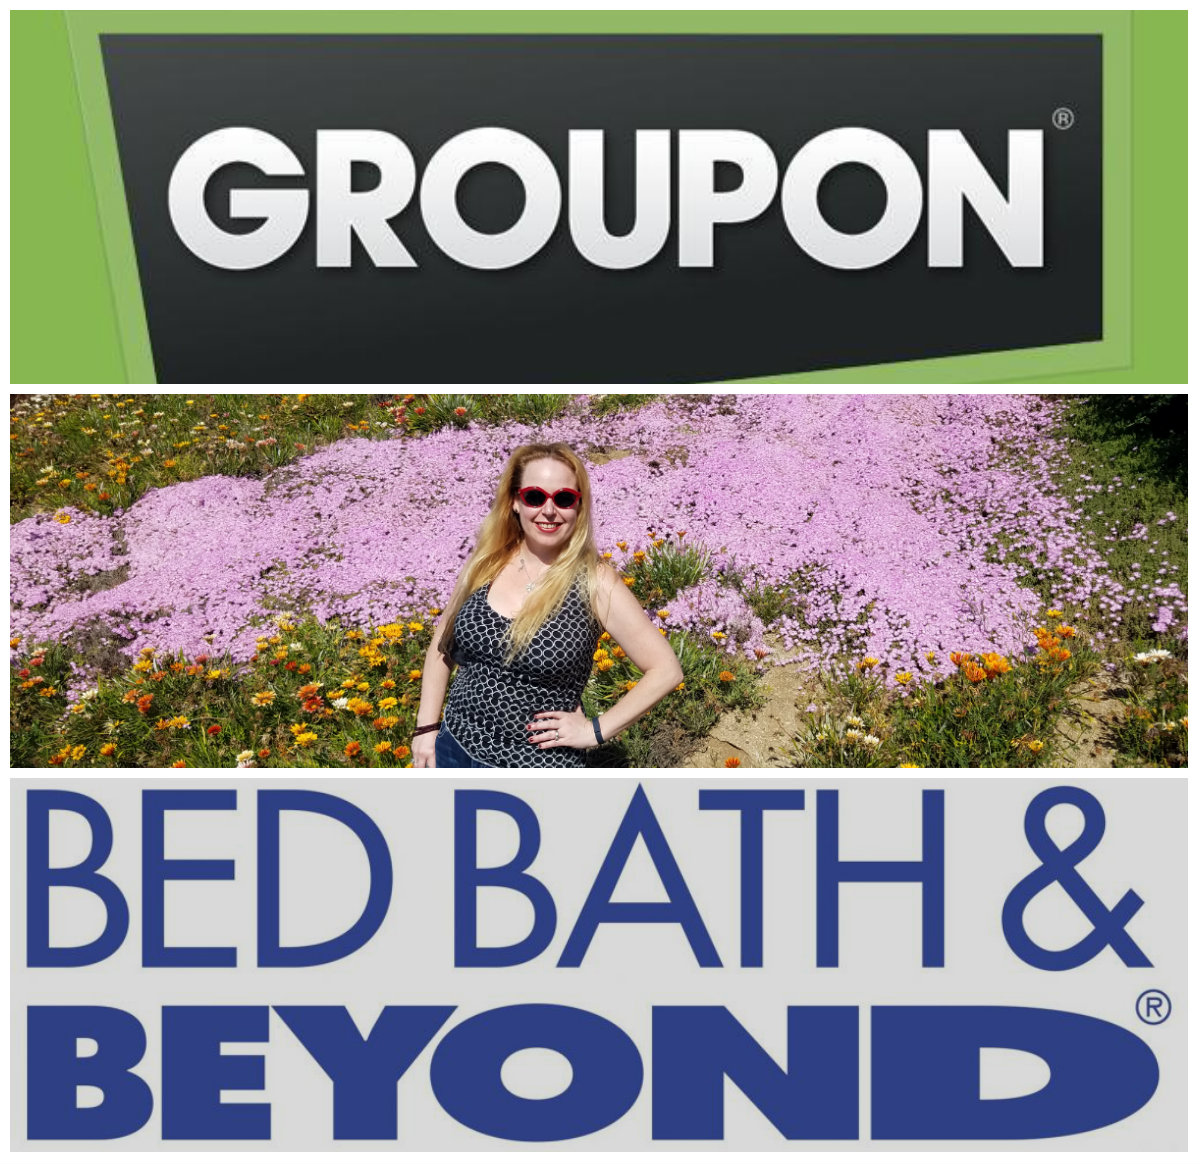 groupon, groupon coupons, coupons, bed bath and beyond